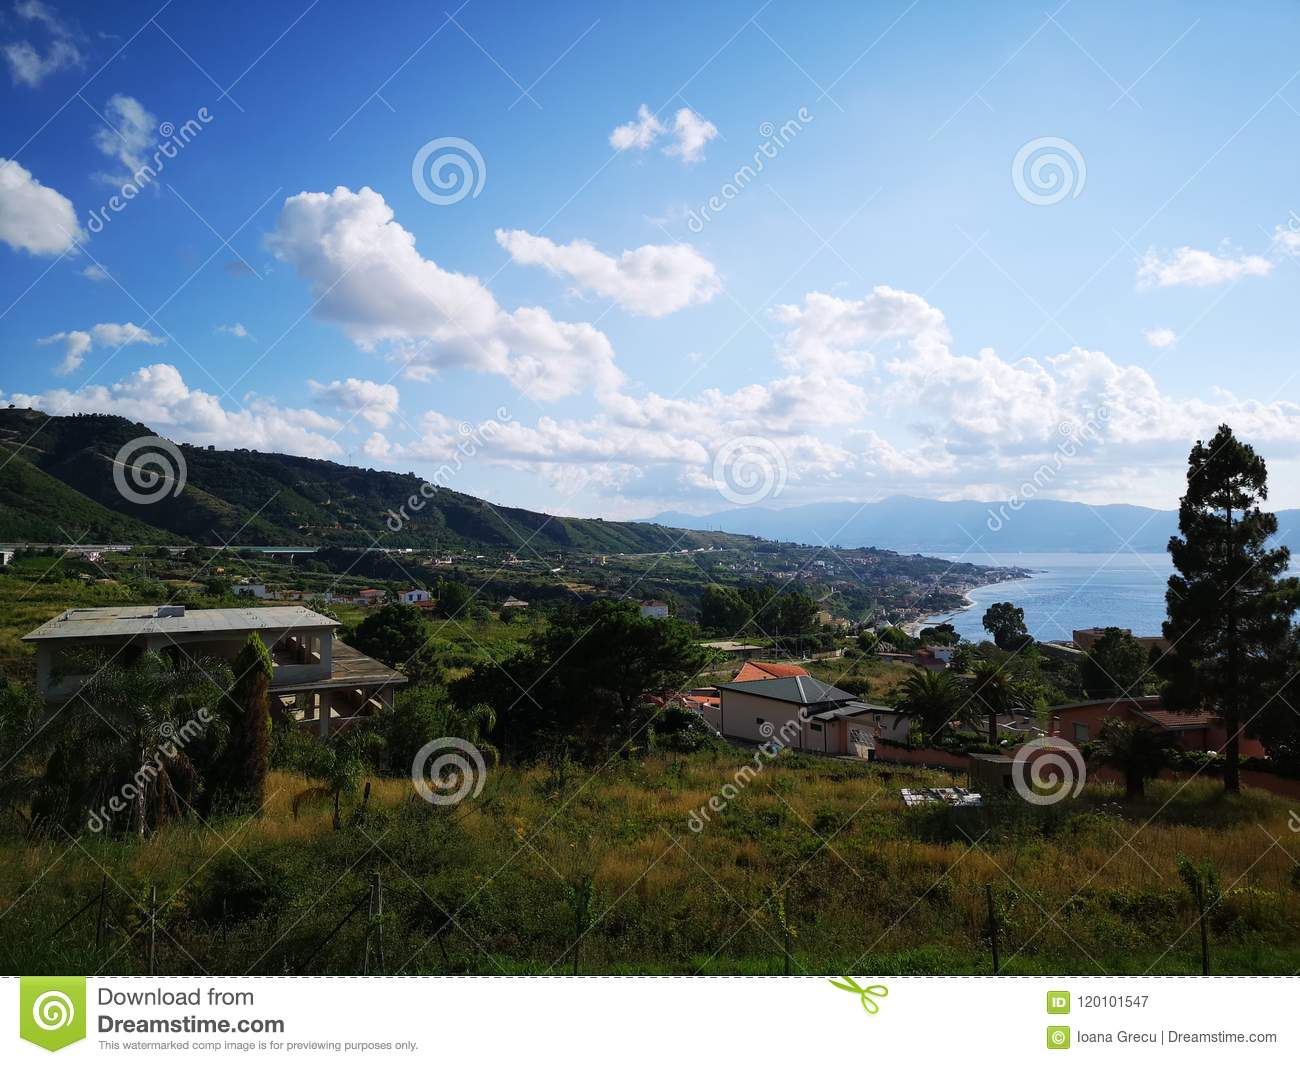 Houses on hills in Calabria